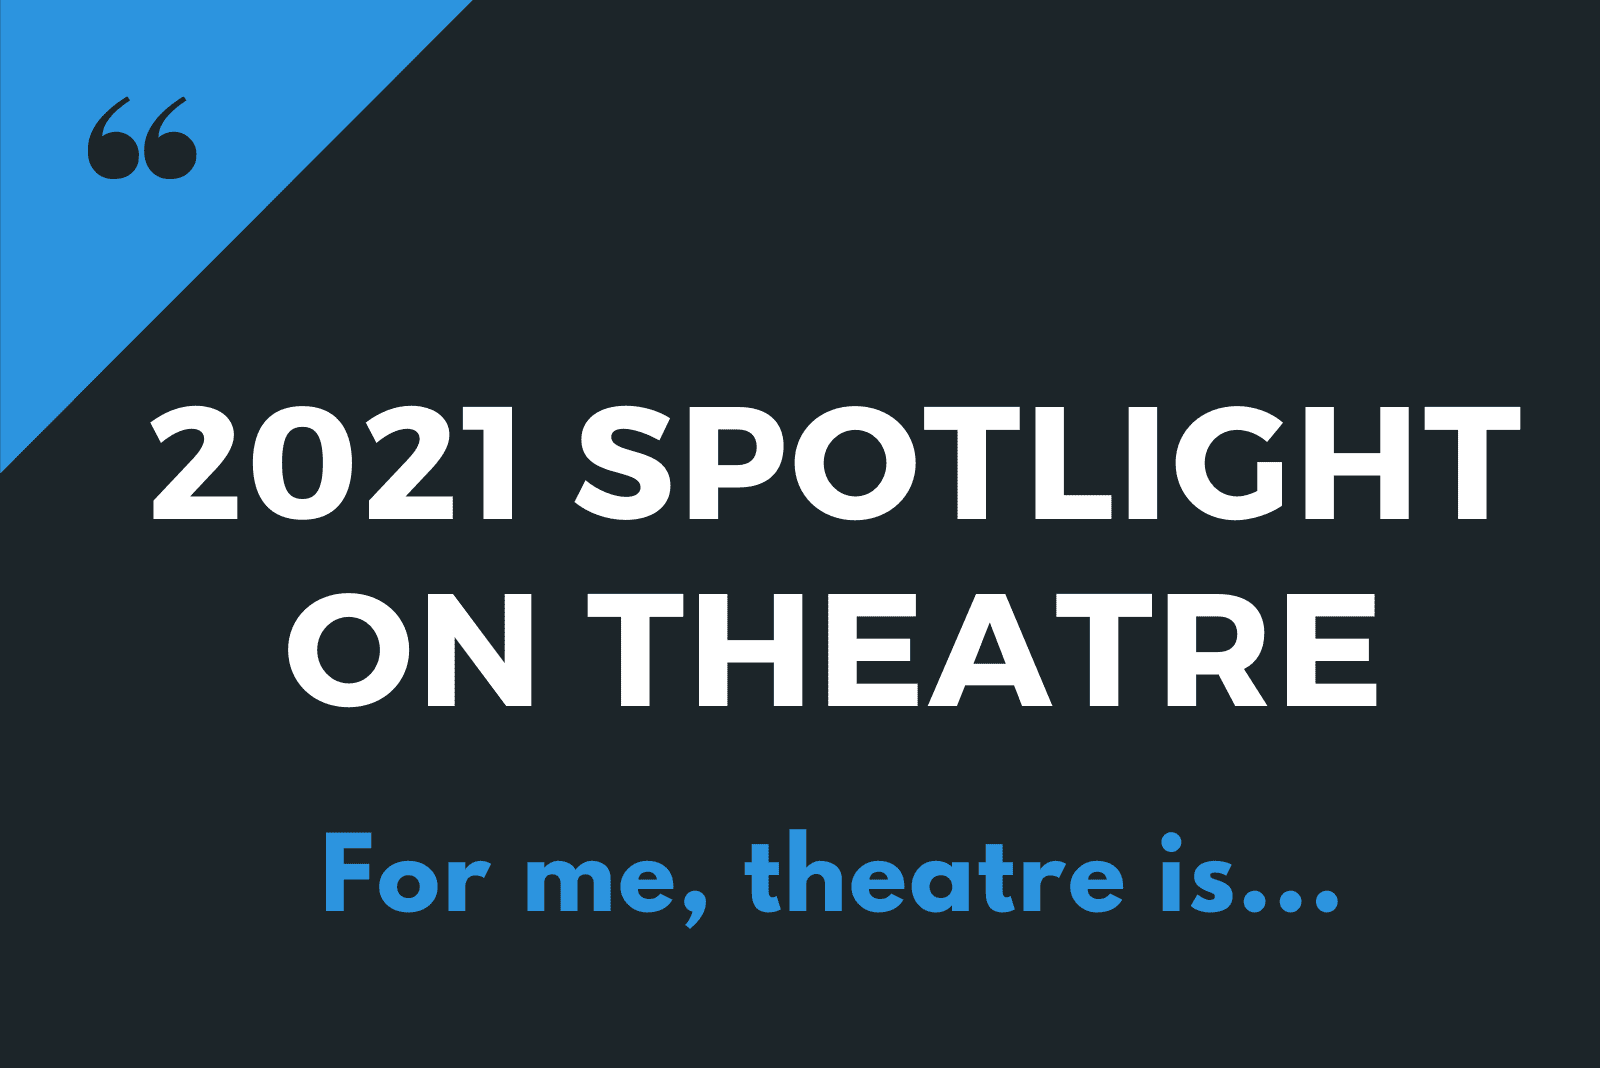 2021 Spotlight on Theatre